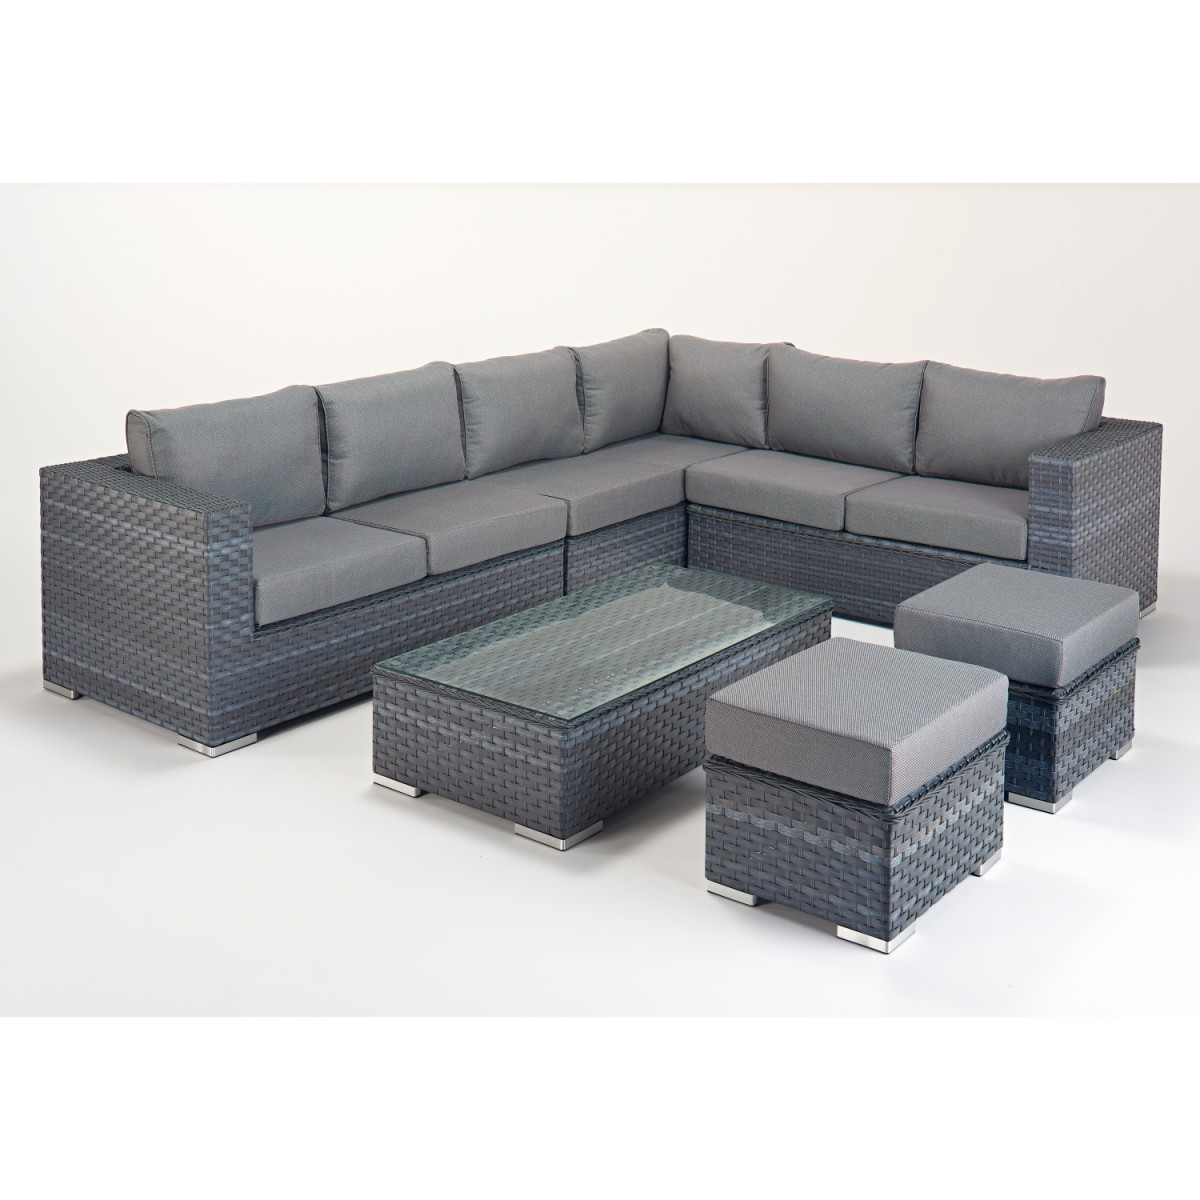 rattan set platinum large corner sofa set wgf 510 right hand. Black Bedroom Furniture Sets. Home Design Ideas